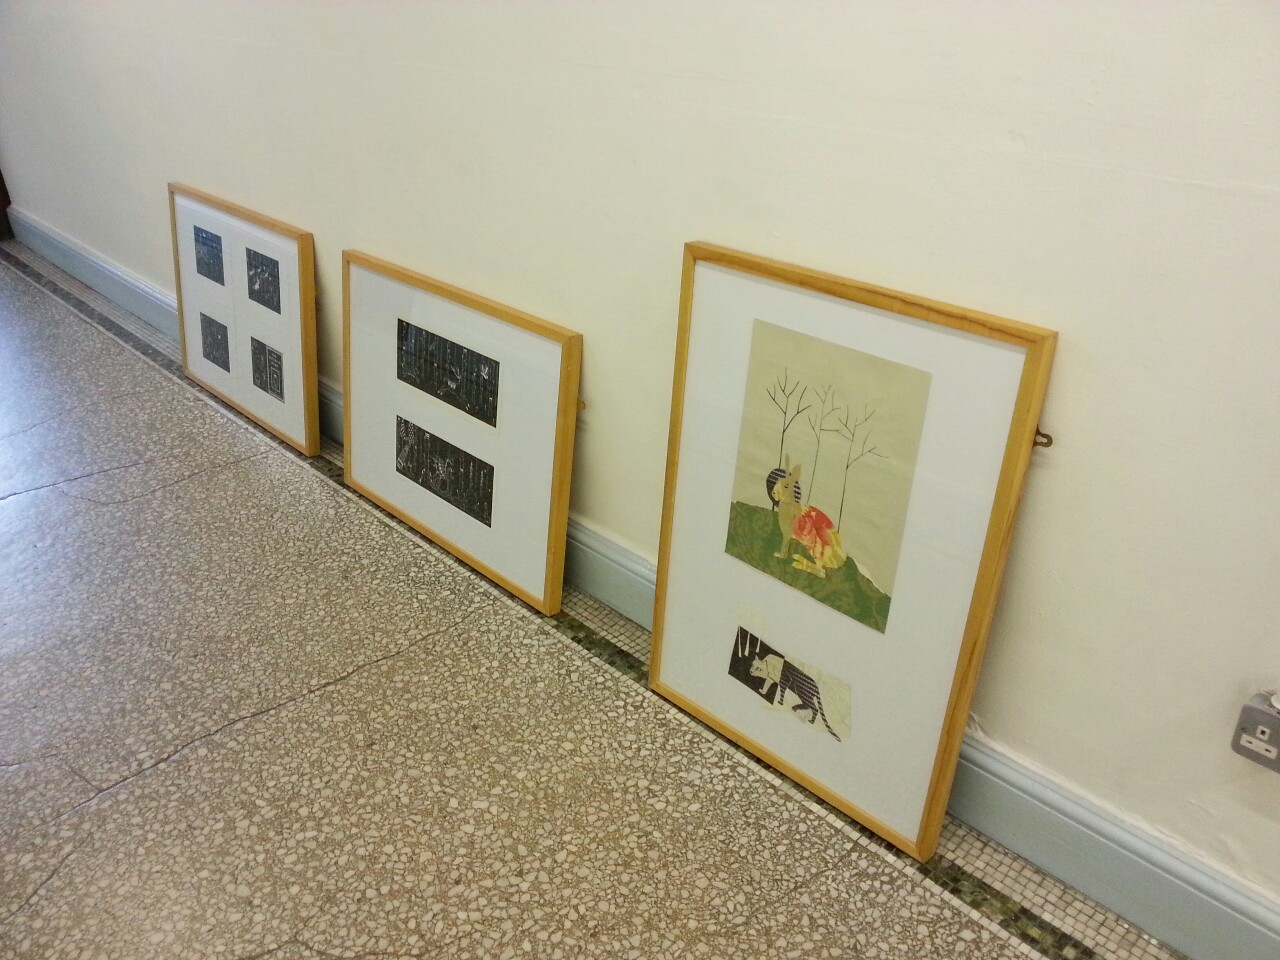 Pretty chuffed that my collage and prints got selected for framing and displaying in the entrance at college.